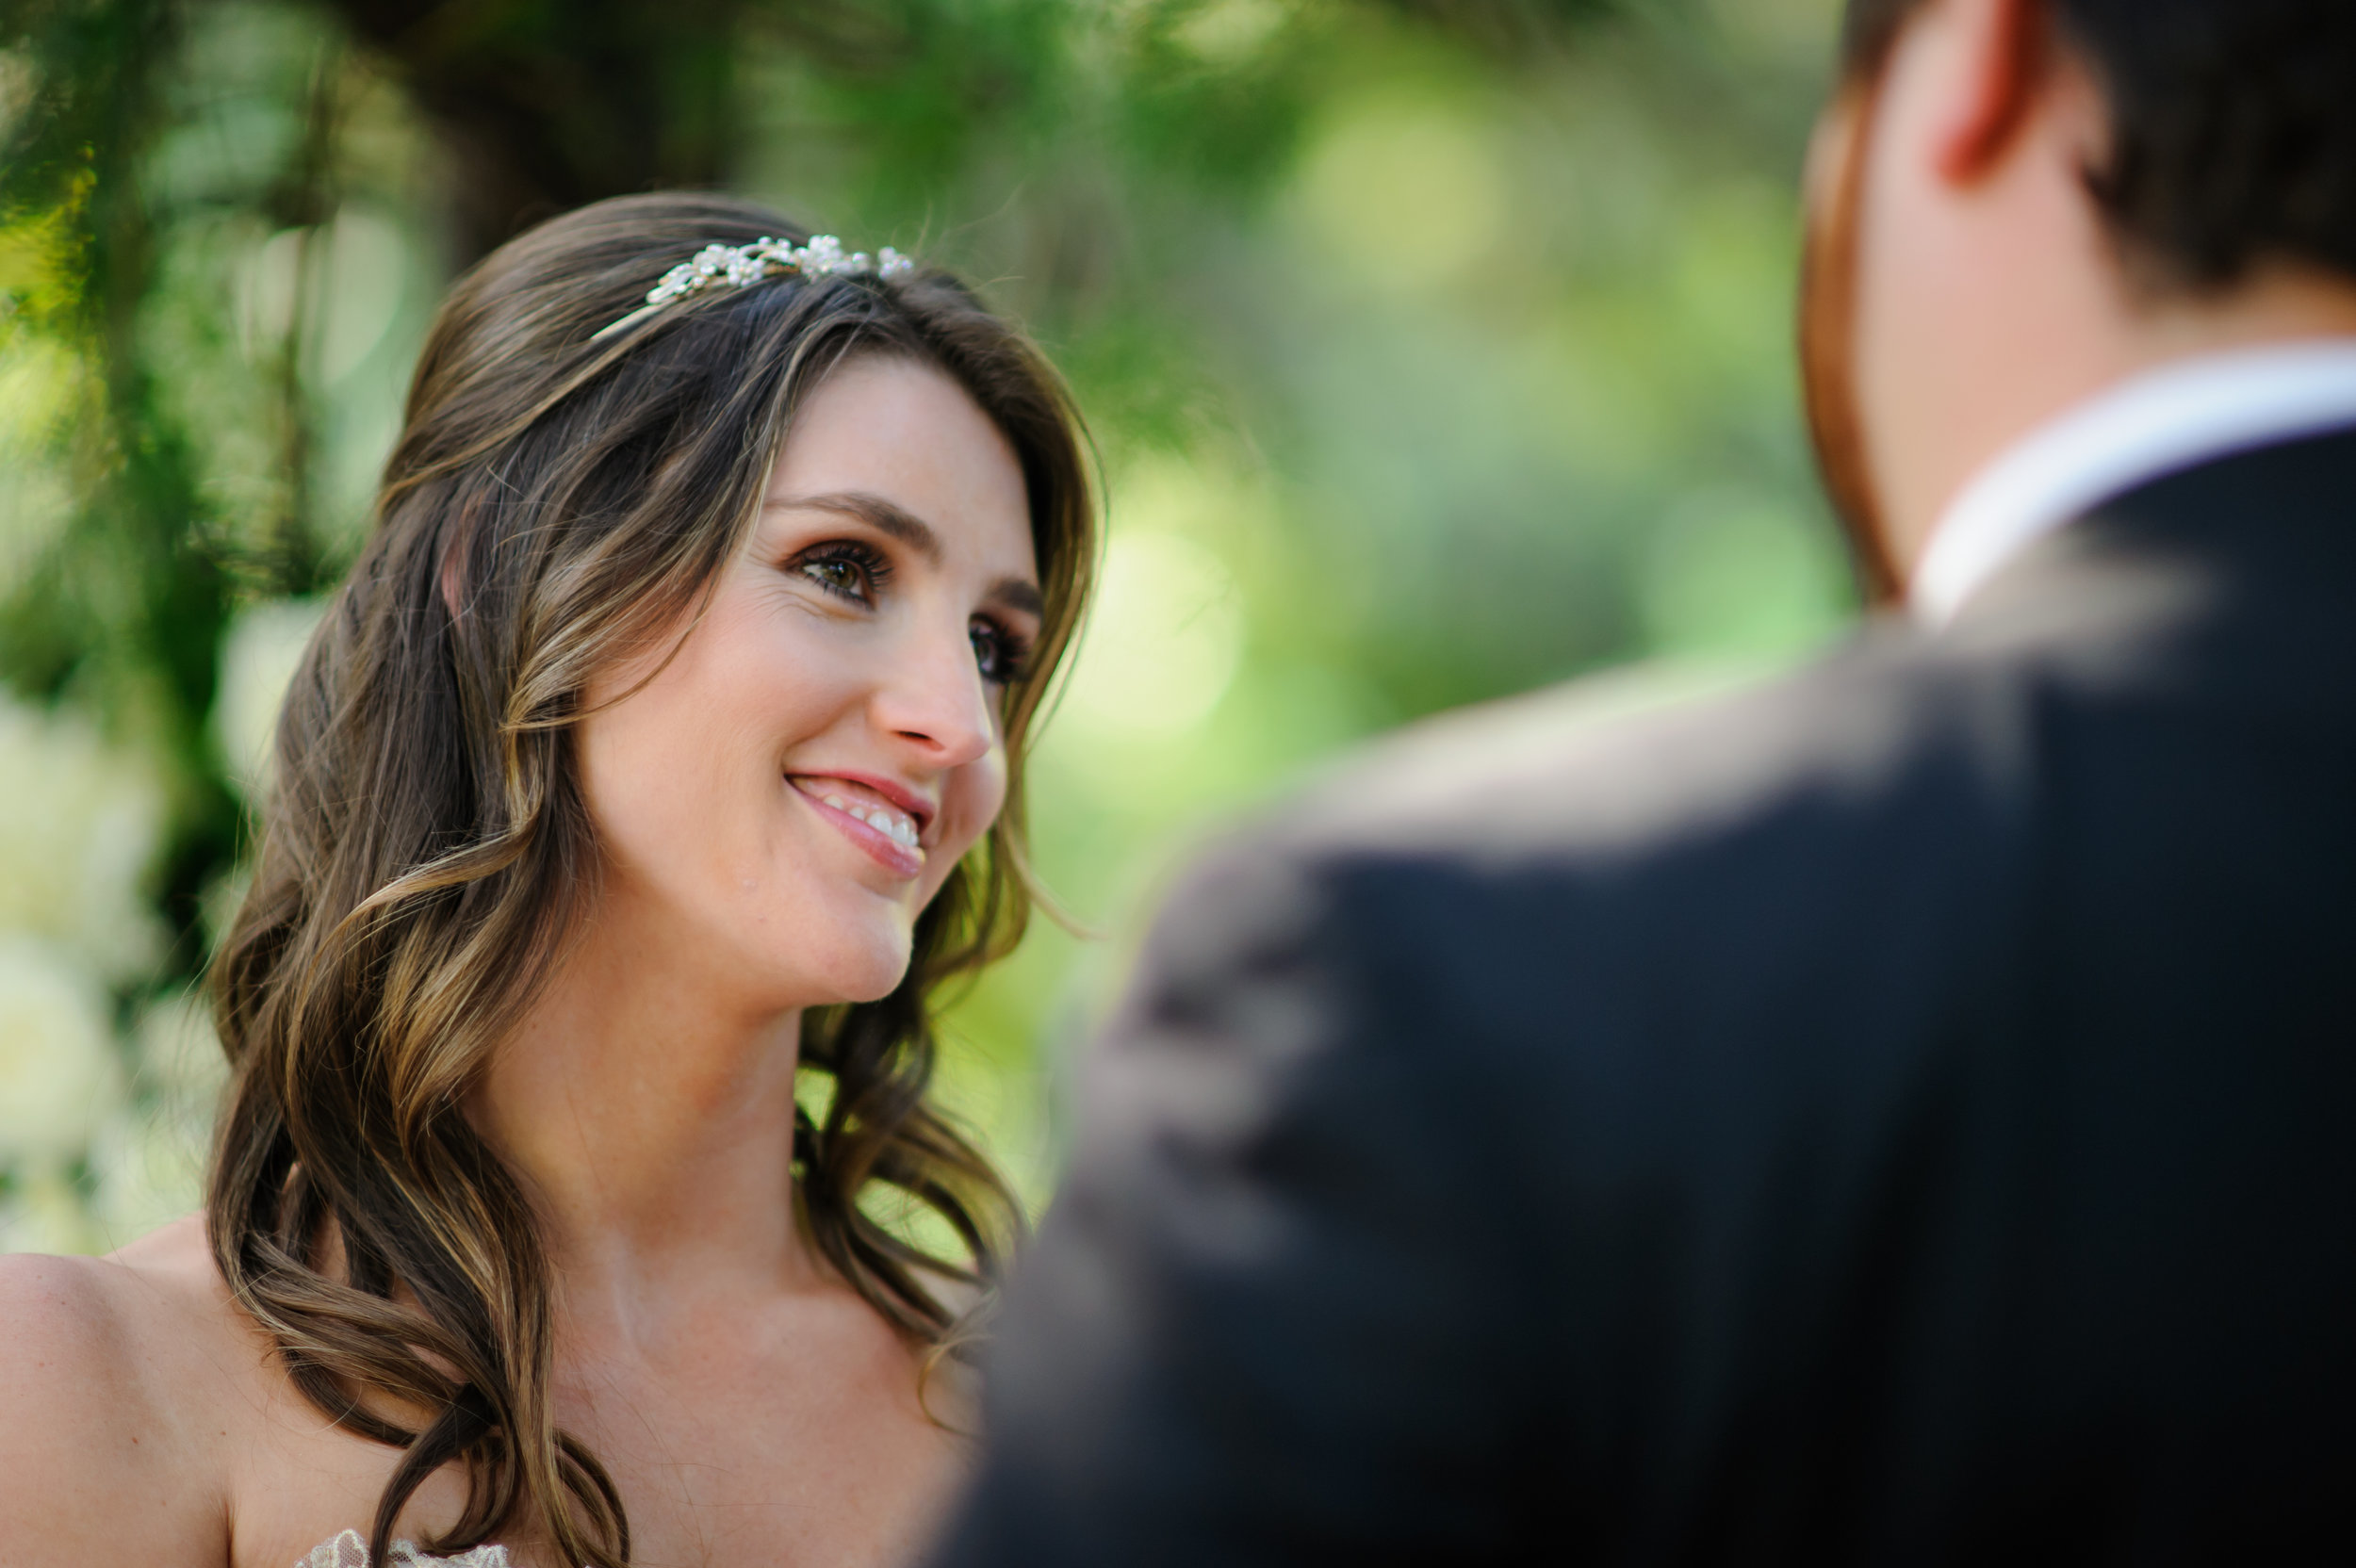 lindsey-charlie-065-monte-verde-inn-foresthill-wedding-photographer-katherine-nicole-photography.JPG